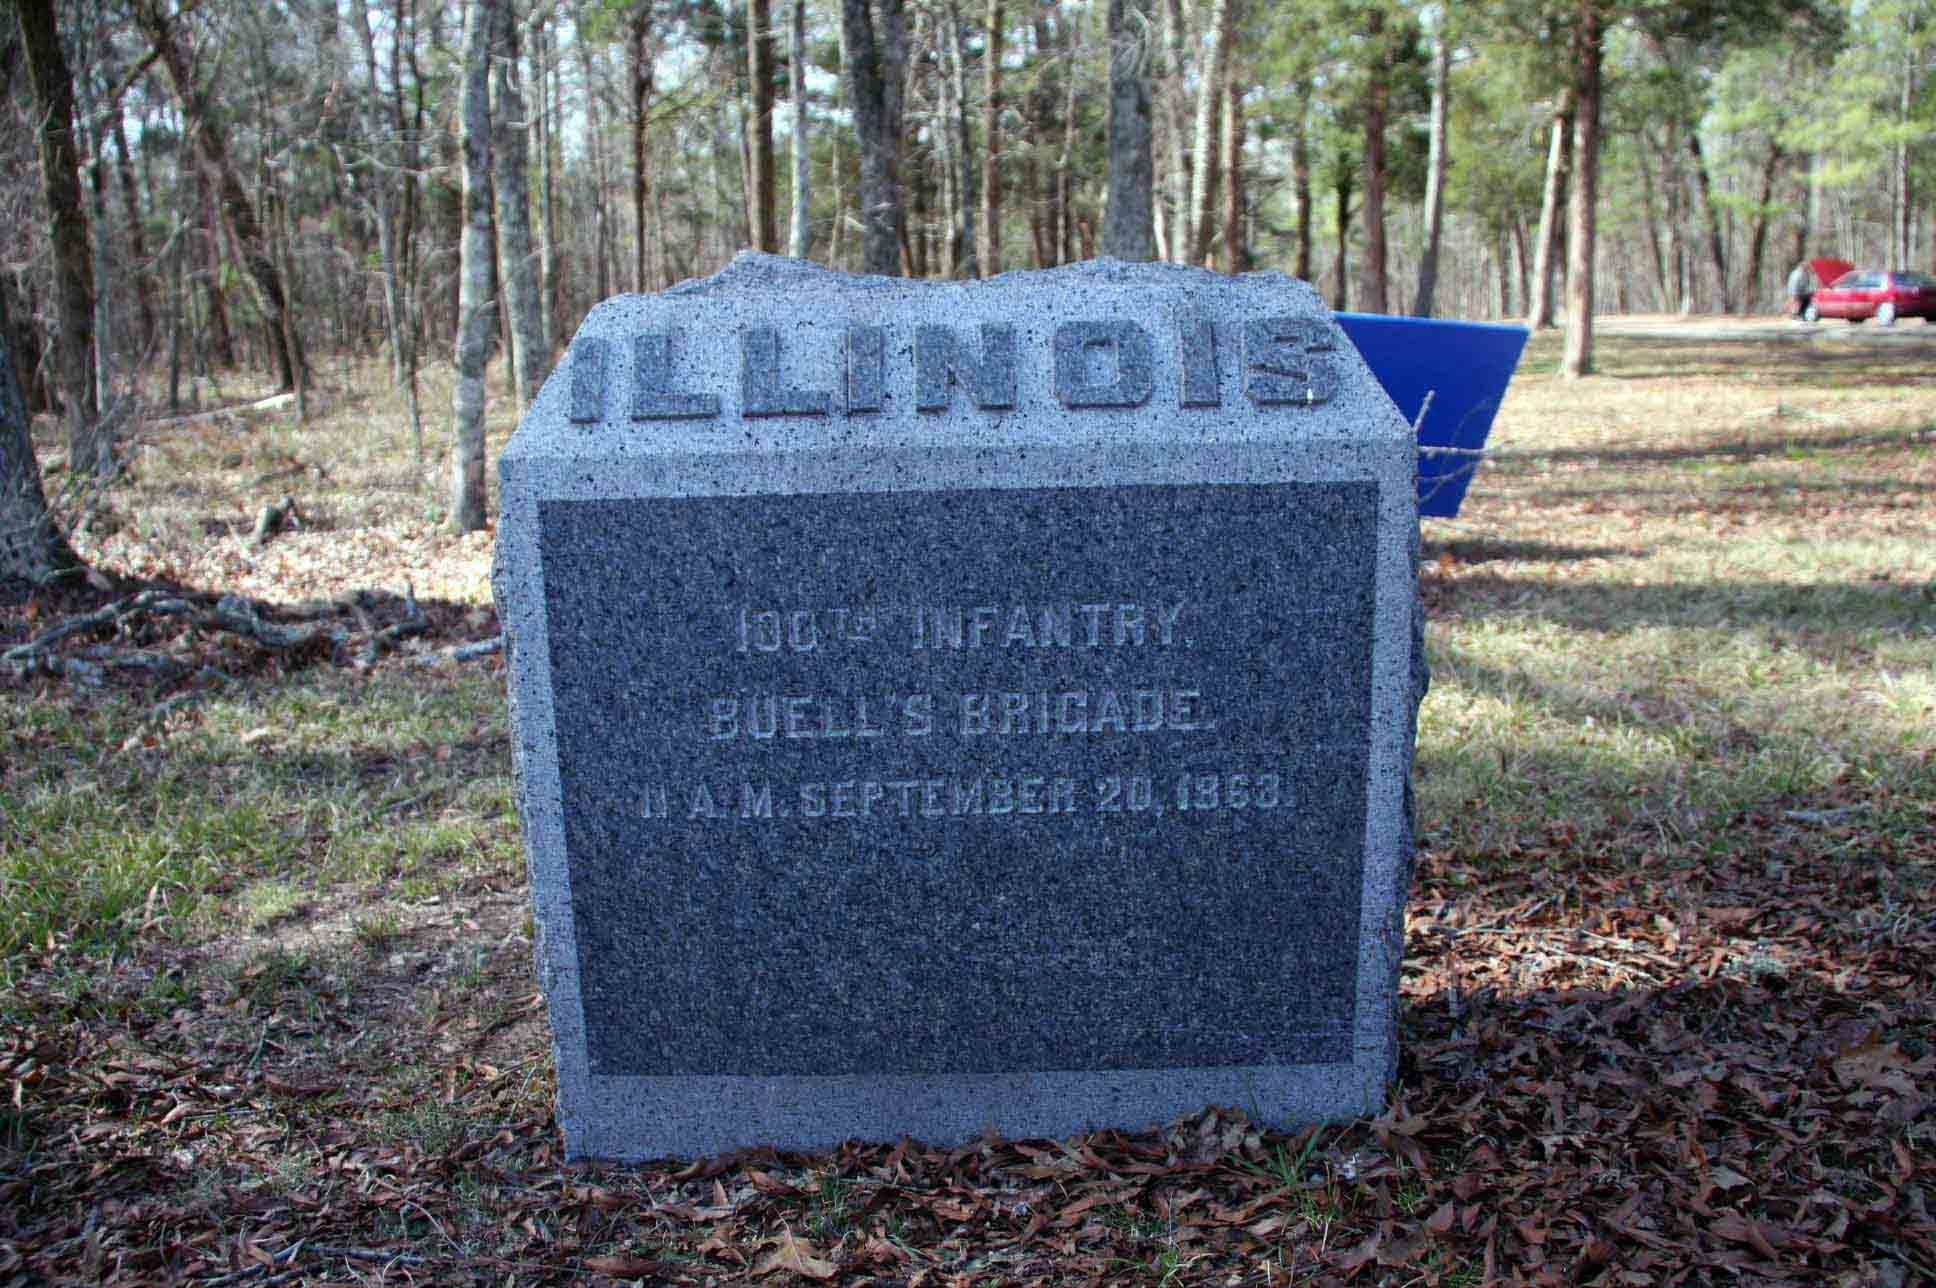 100th Illinois Infantry Regiment Marker, click photo to enlarge.